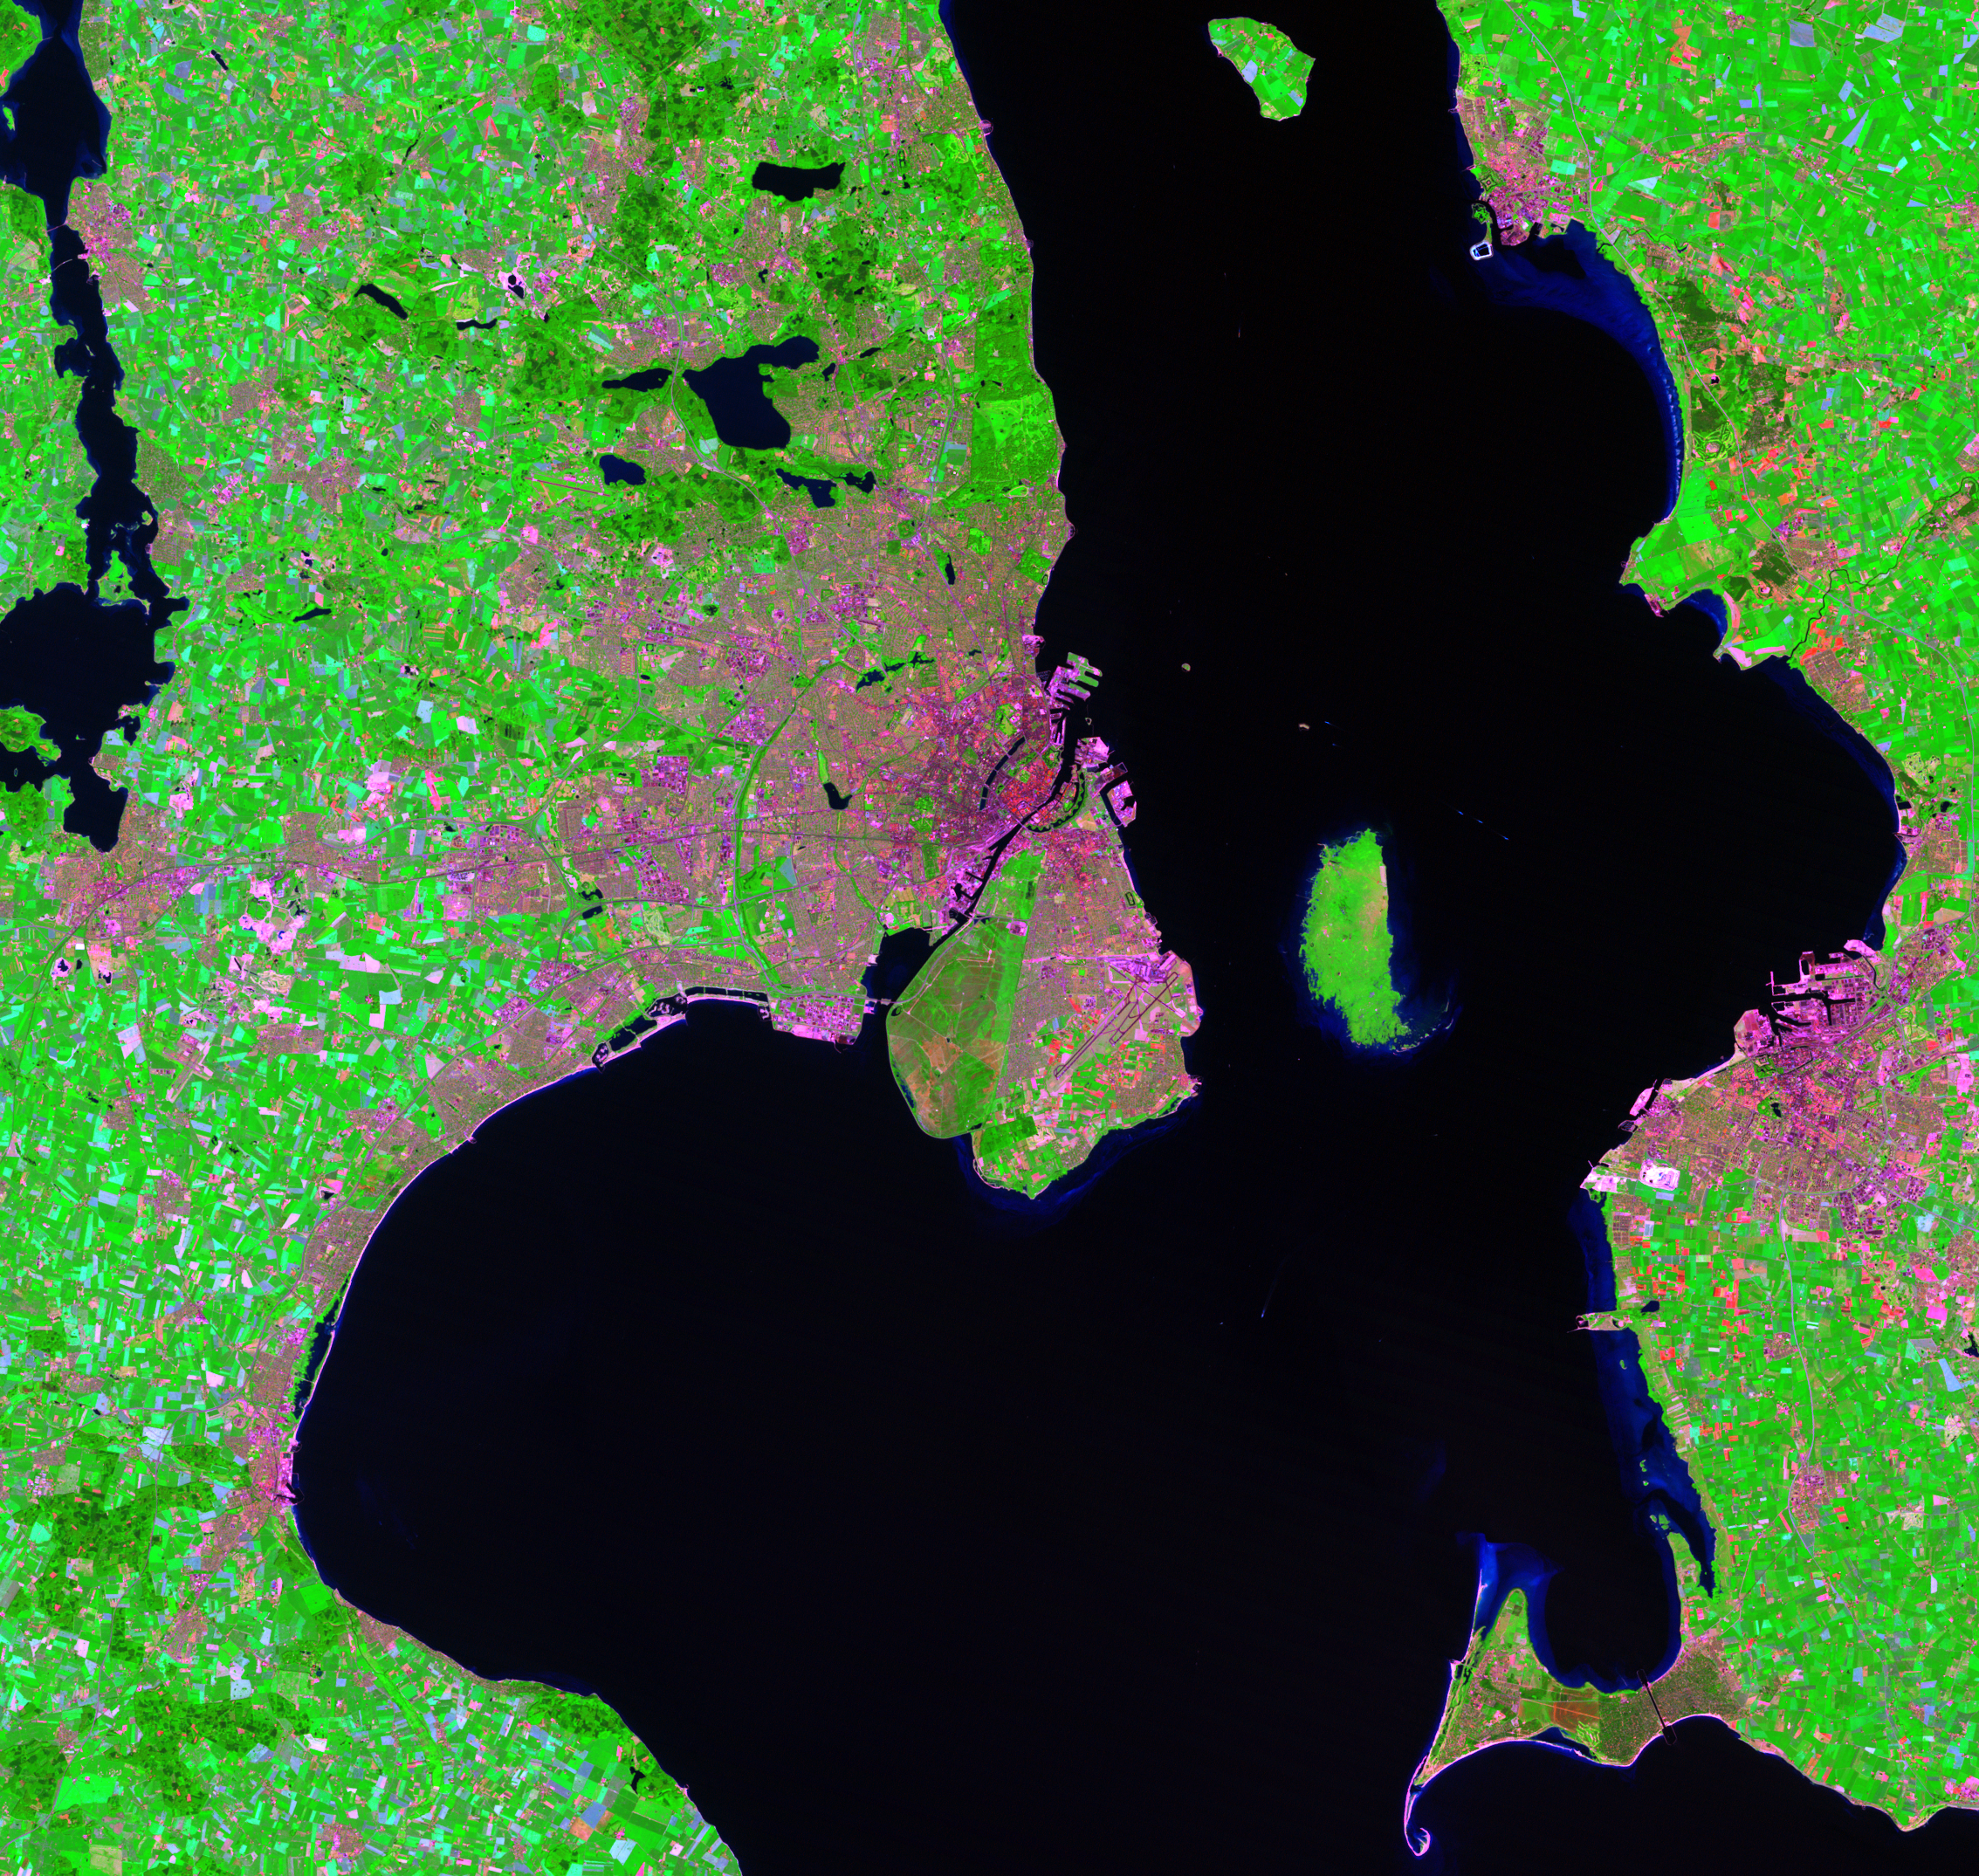 July 12, 1994, Landsat 5 (path/row 194/21) — Copenhagen, Denmark